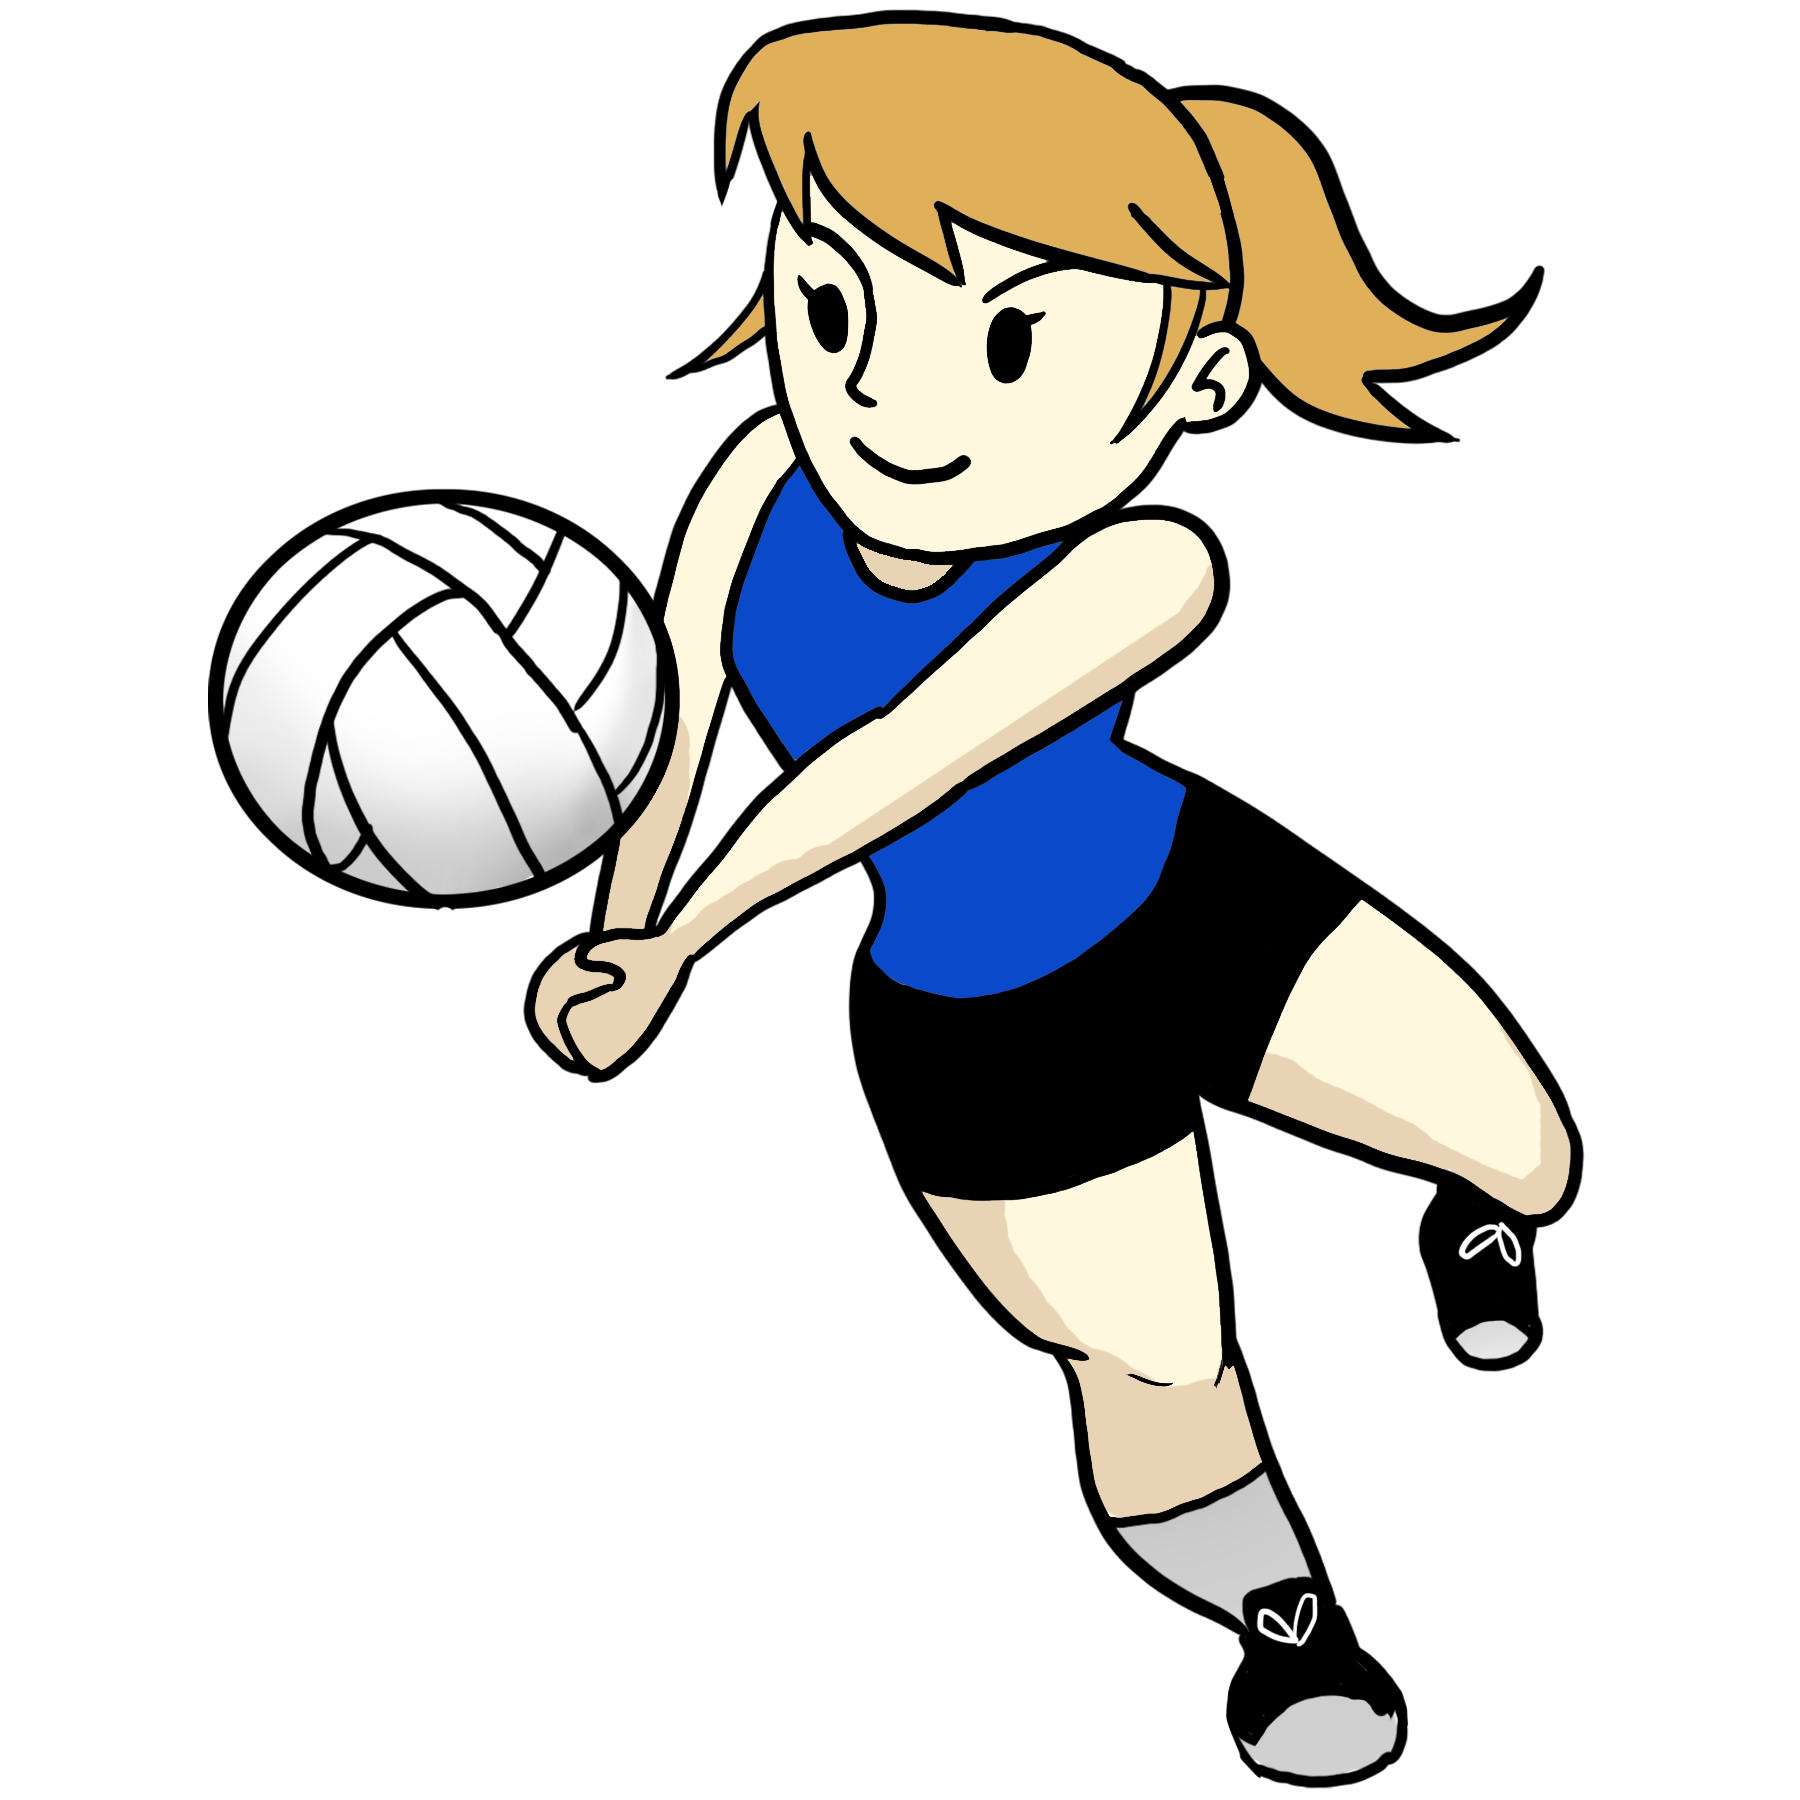 Volleyball clipart volleyball game. Biomechanics on emaze drills